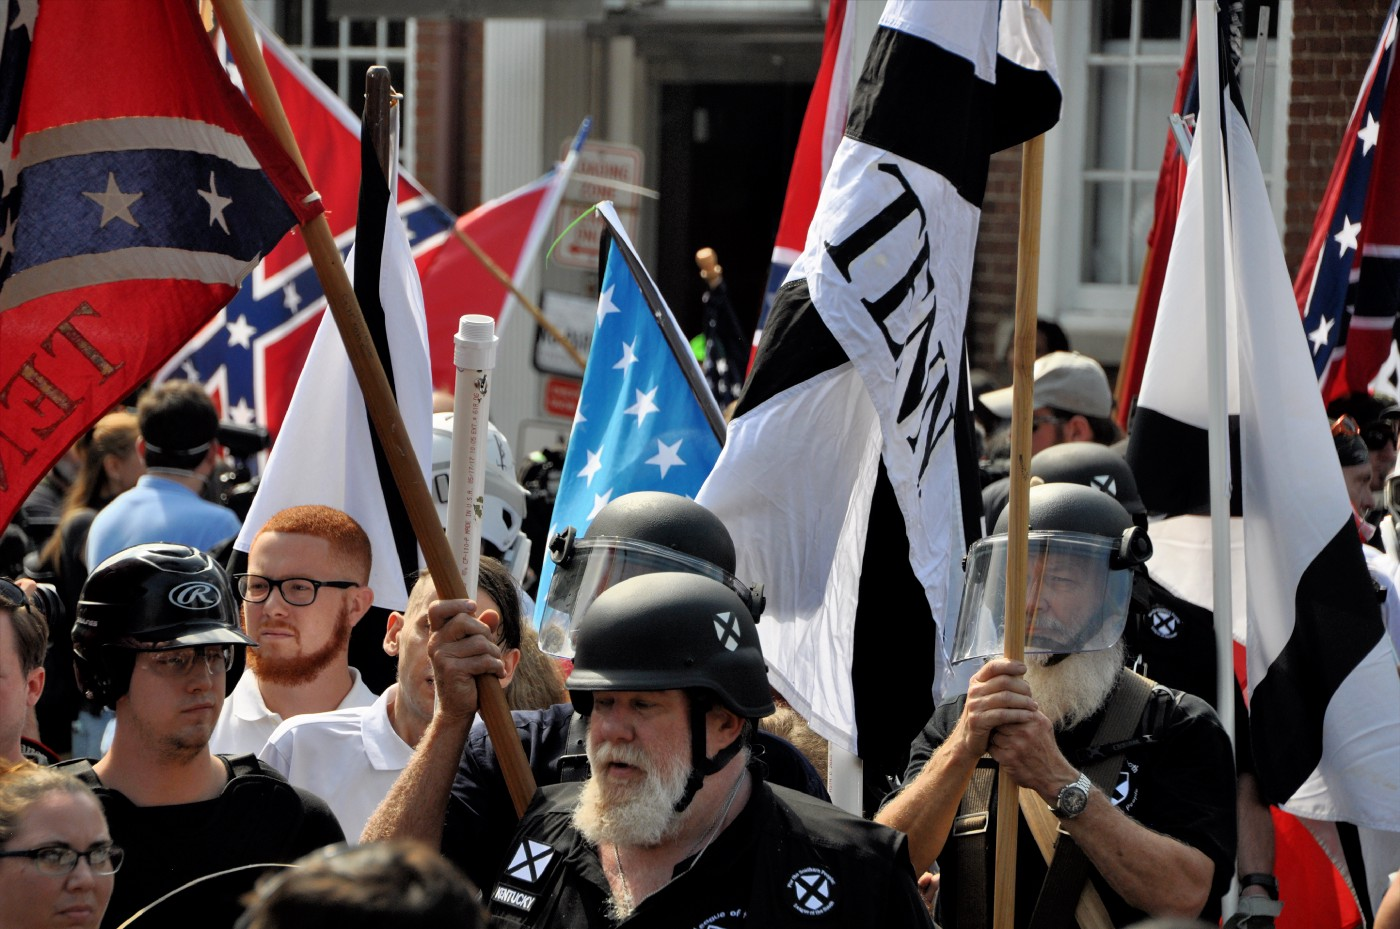 Charlottesville Extremist March